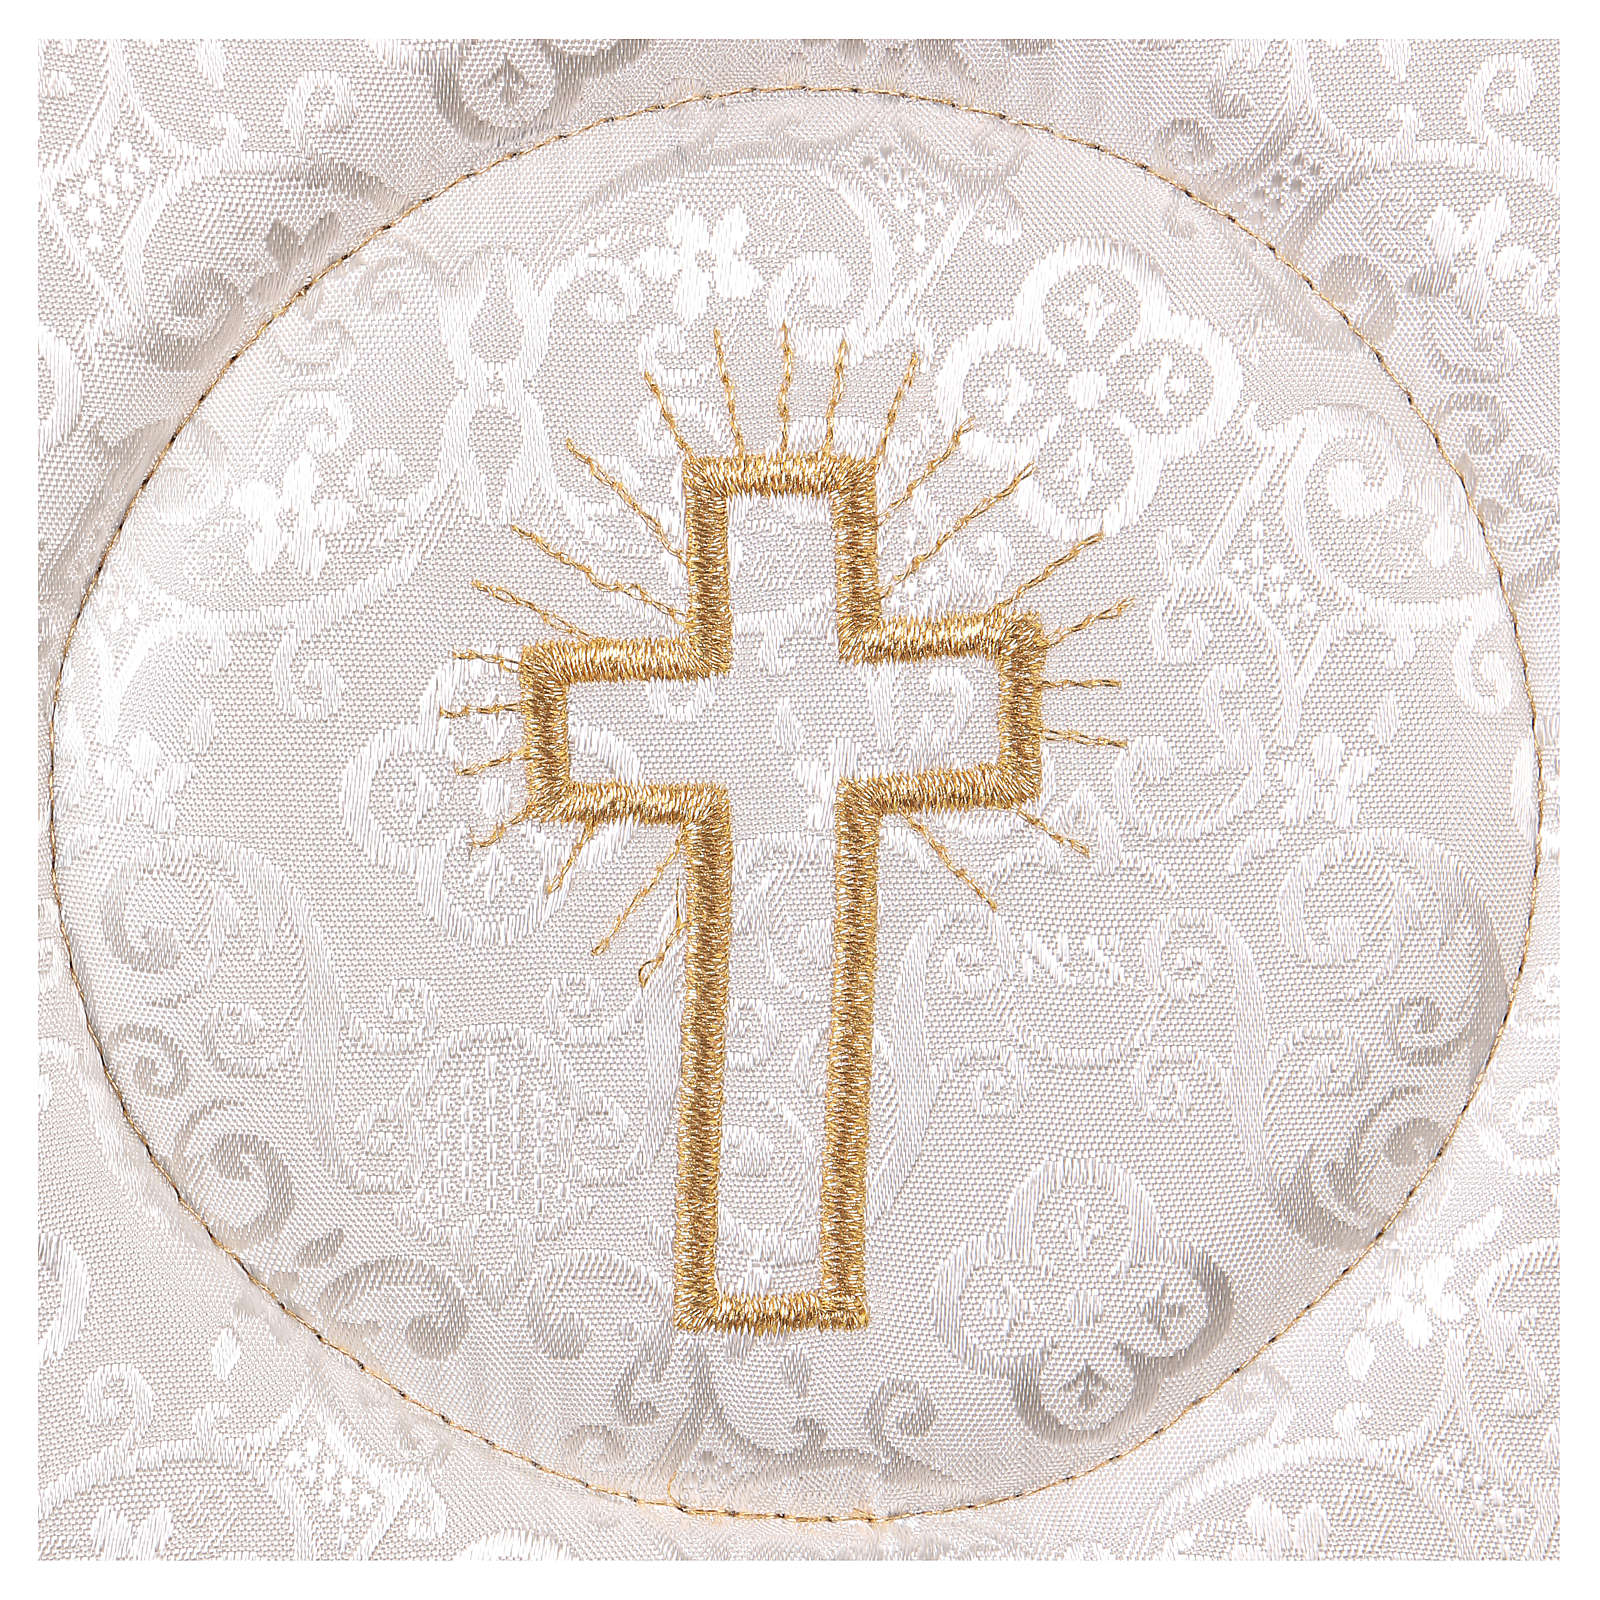 Chalice veil (pall) with cross embroidery on white damask fabric 4